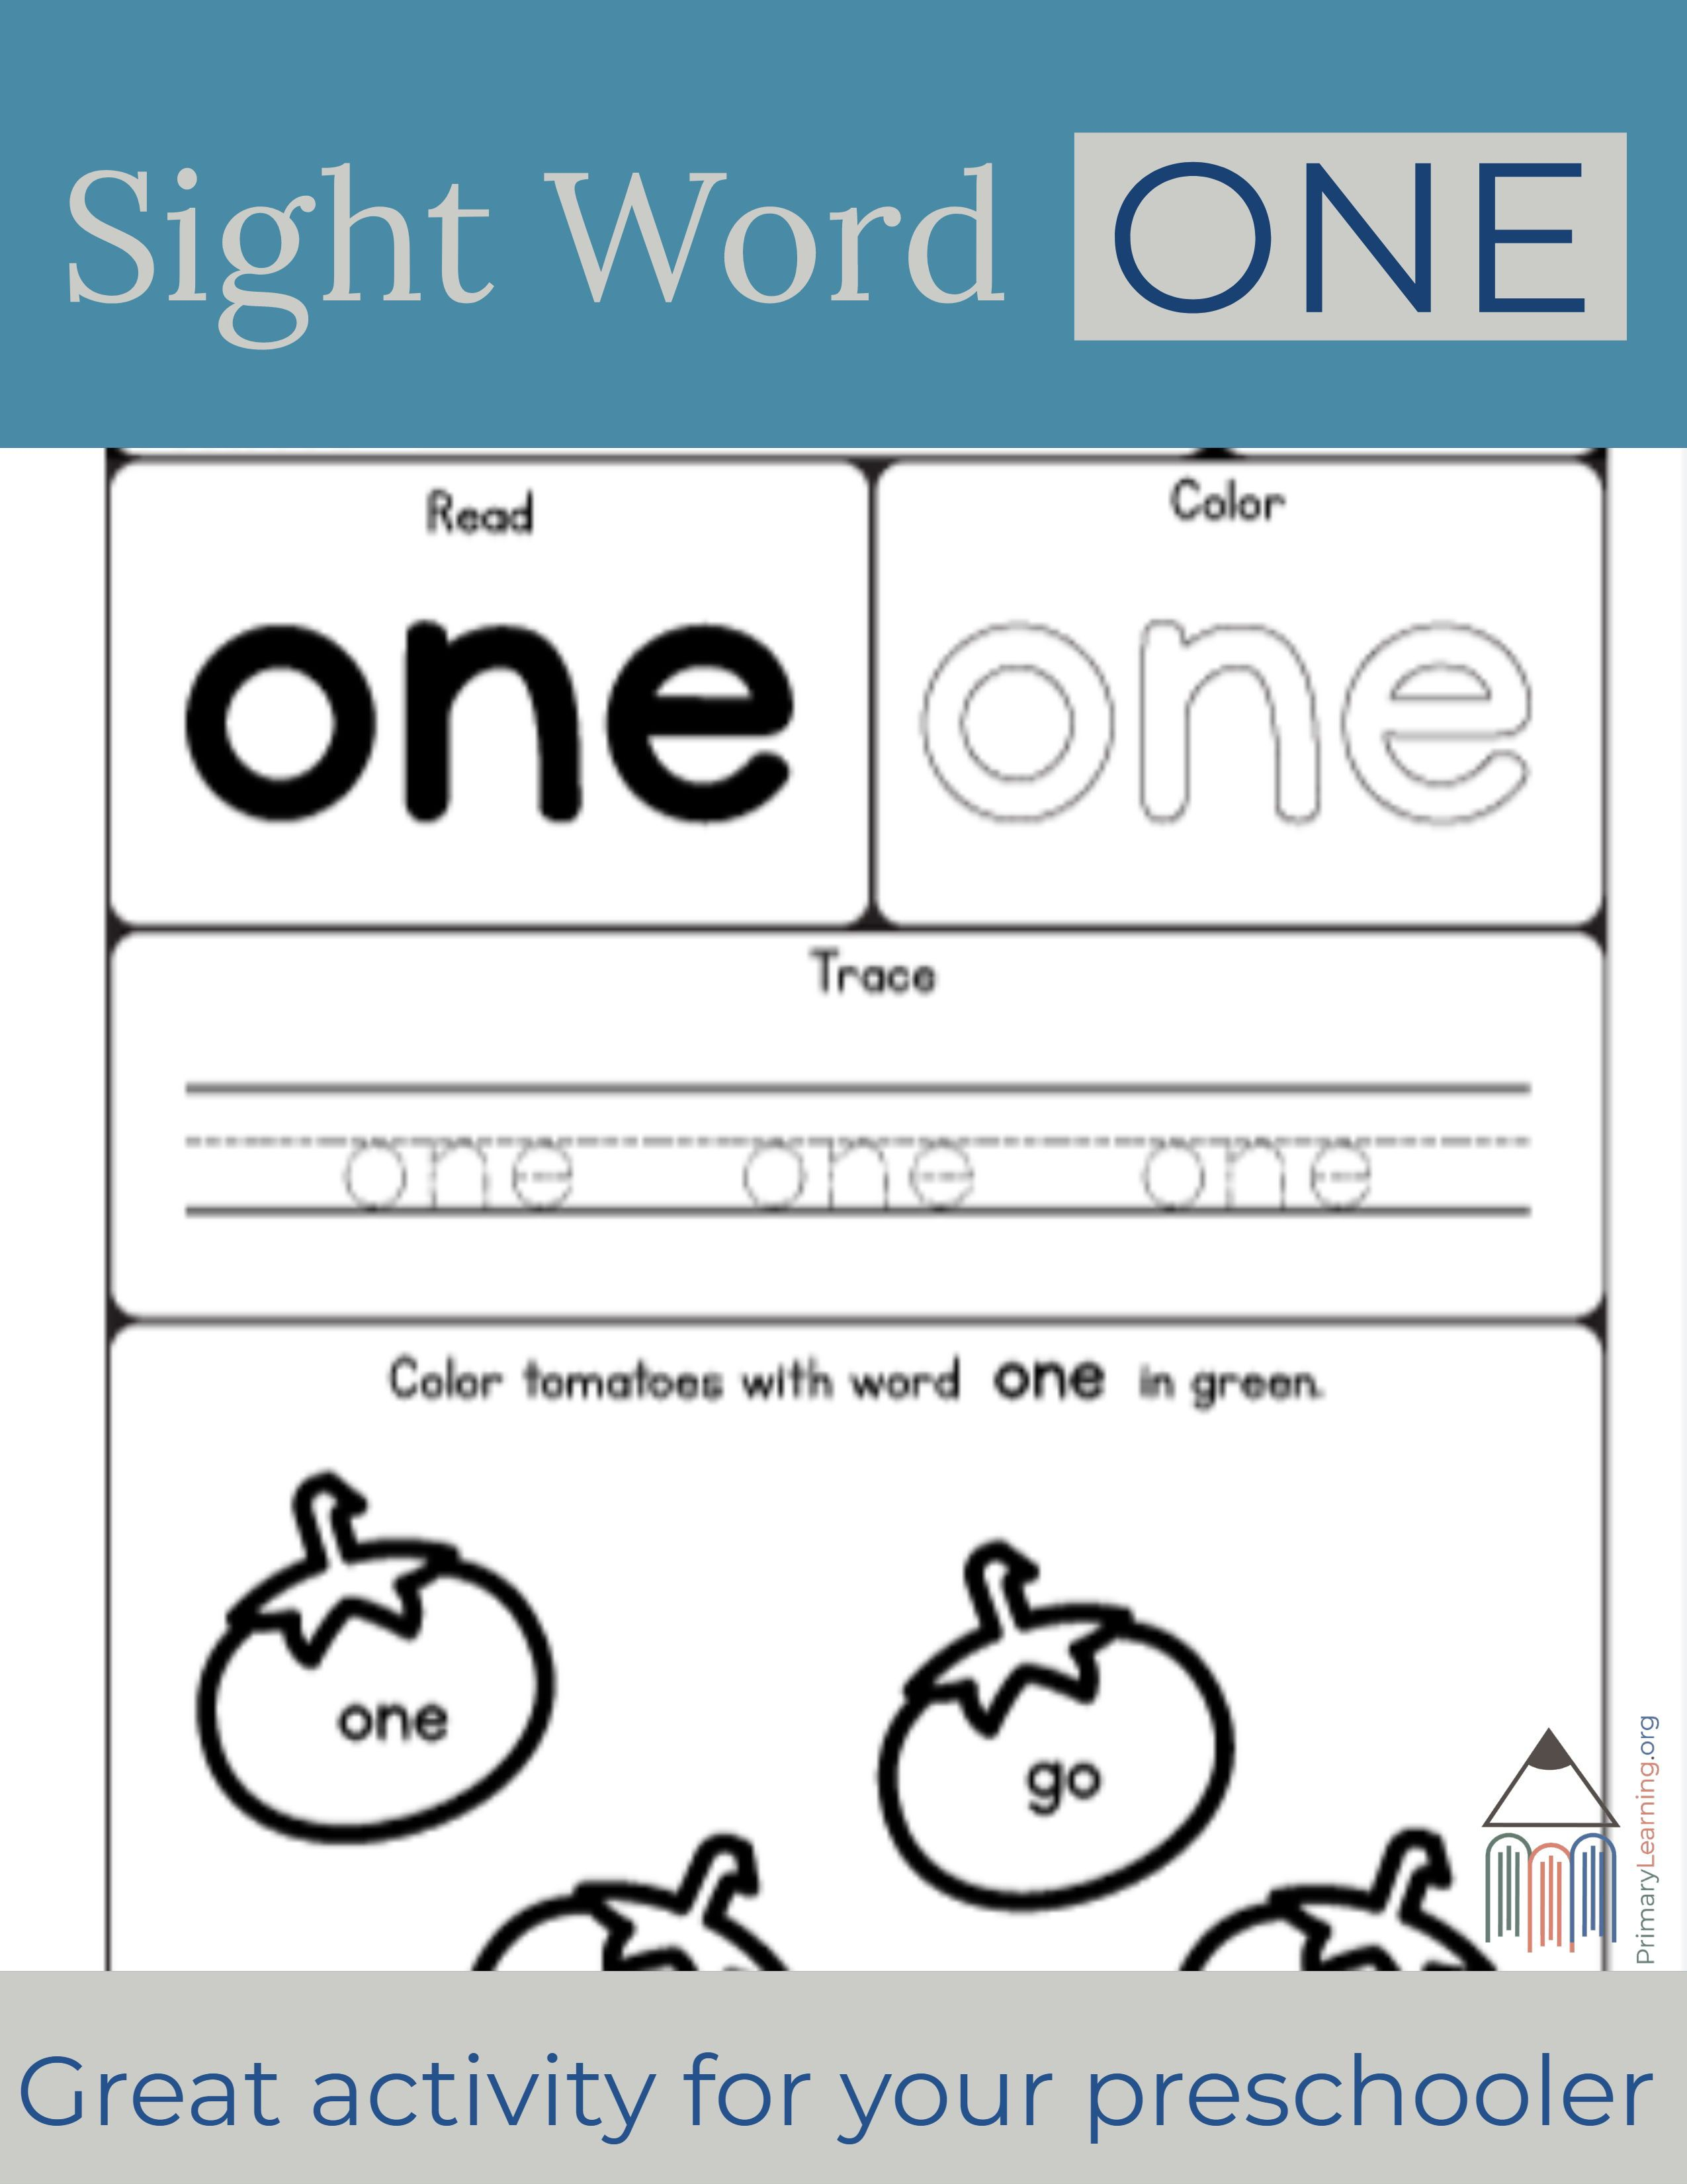 Sight Word One Worksheet Primarylearning Org Kindergarten Worksheets Sight Words Sight Words Sight Word Worksheets